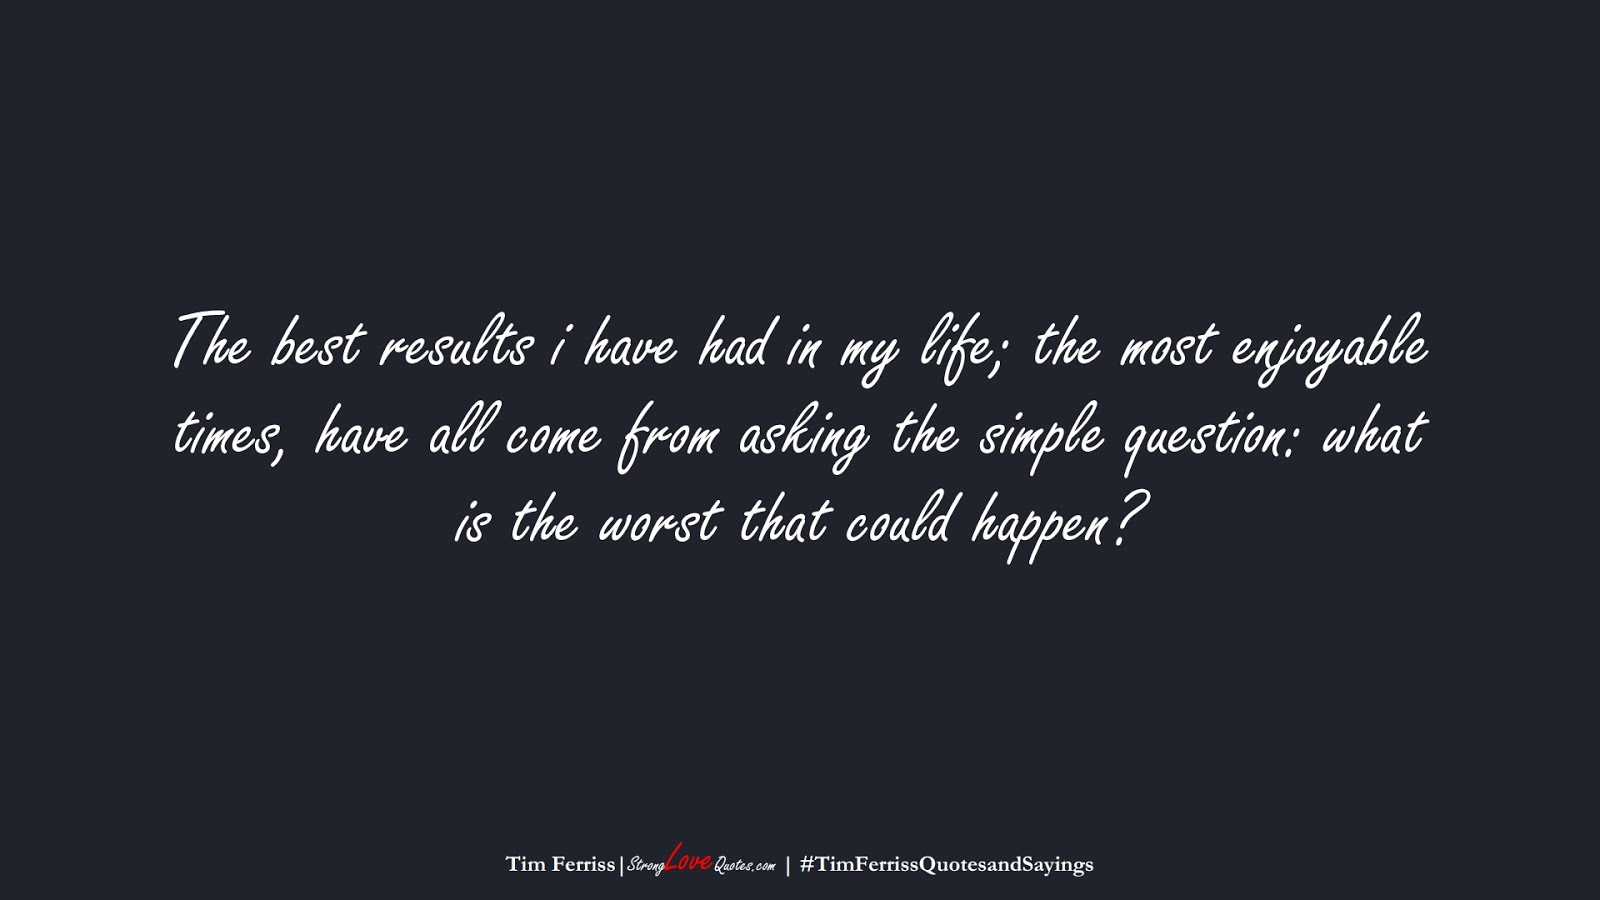 The best results i have had in my life; the most enjoyable times, have all come from asking the simple question: what is the worst that could happen? (Tim Ferriss);  #TimFerrissQuotesandSayings